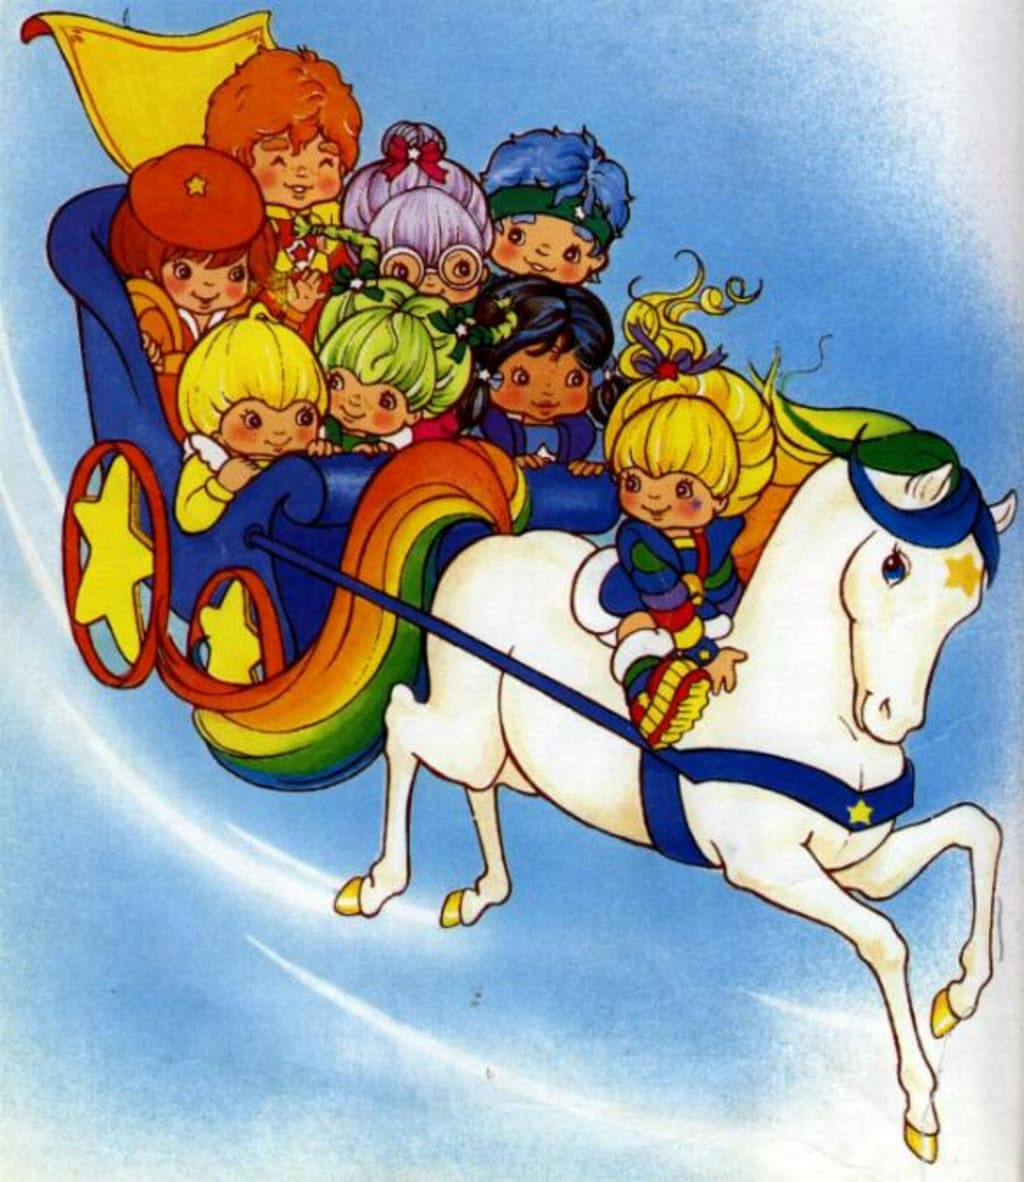 'Rainbow Brite;' Let's Go to Rainbow Land